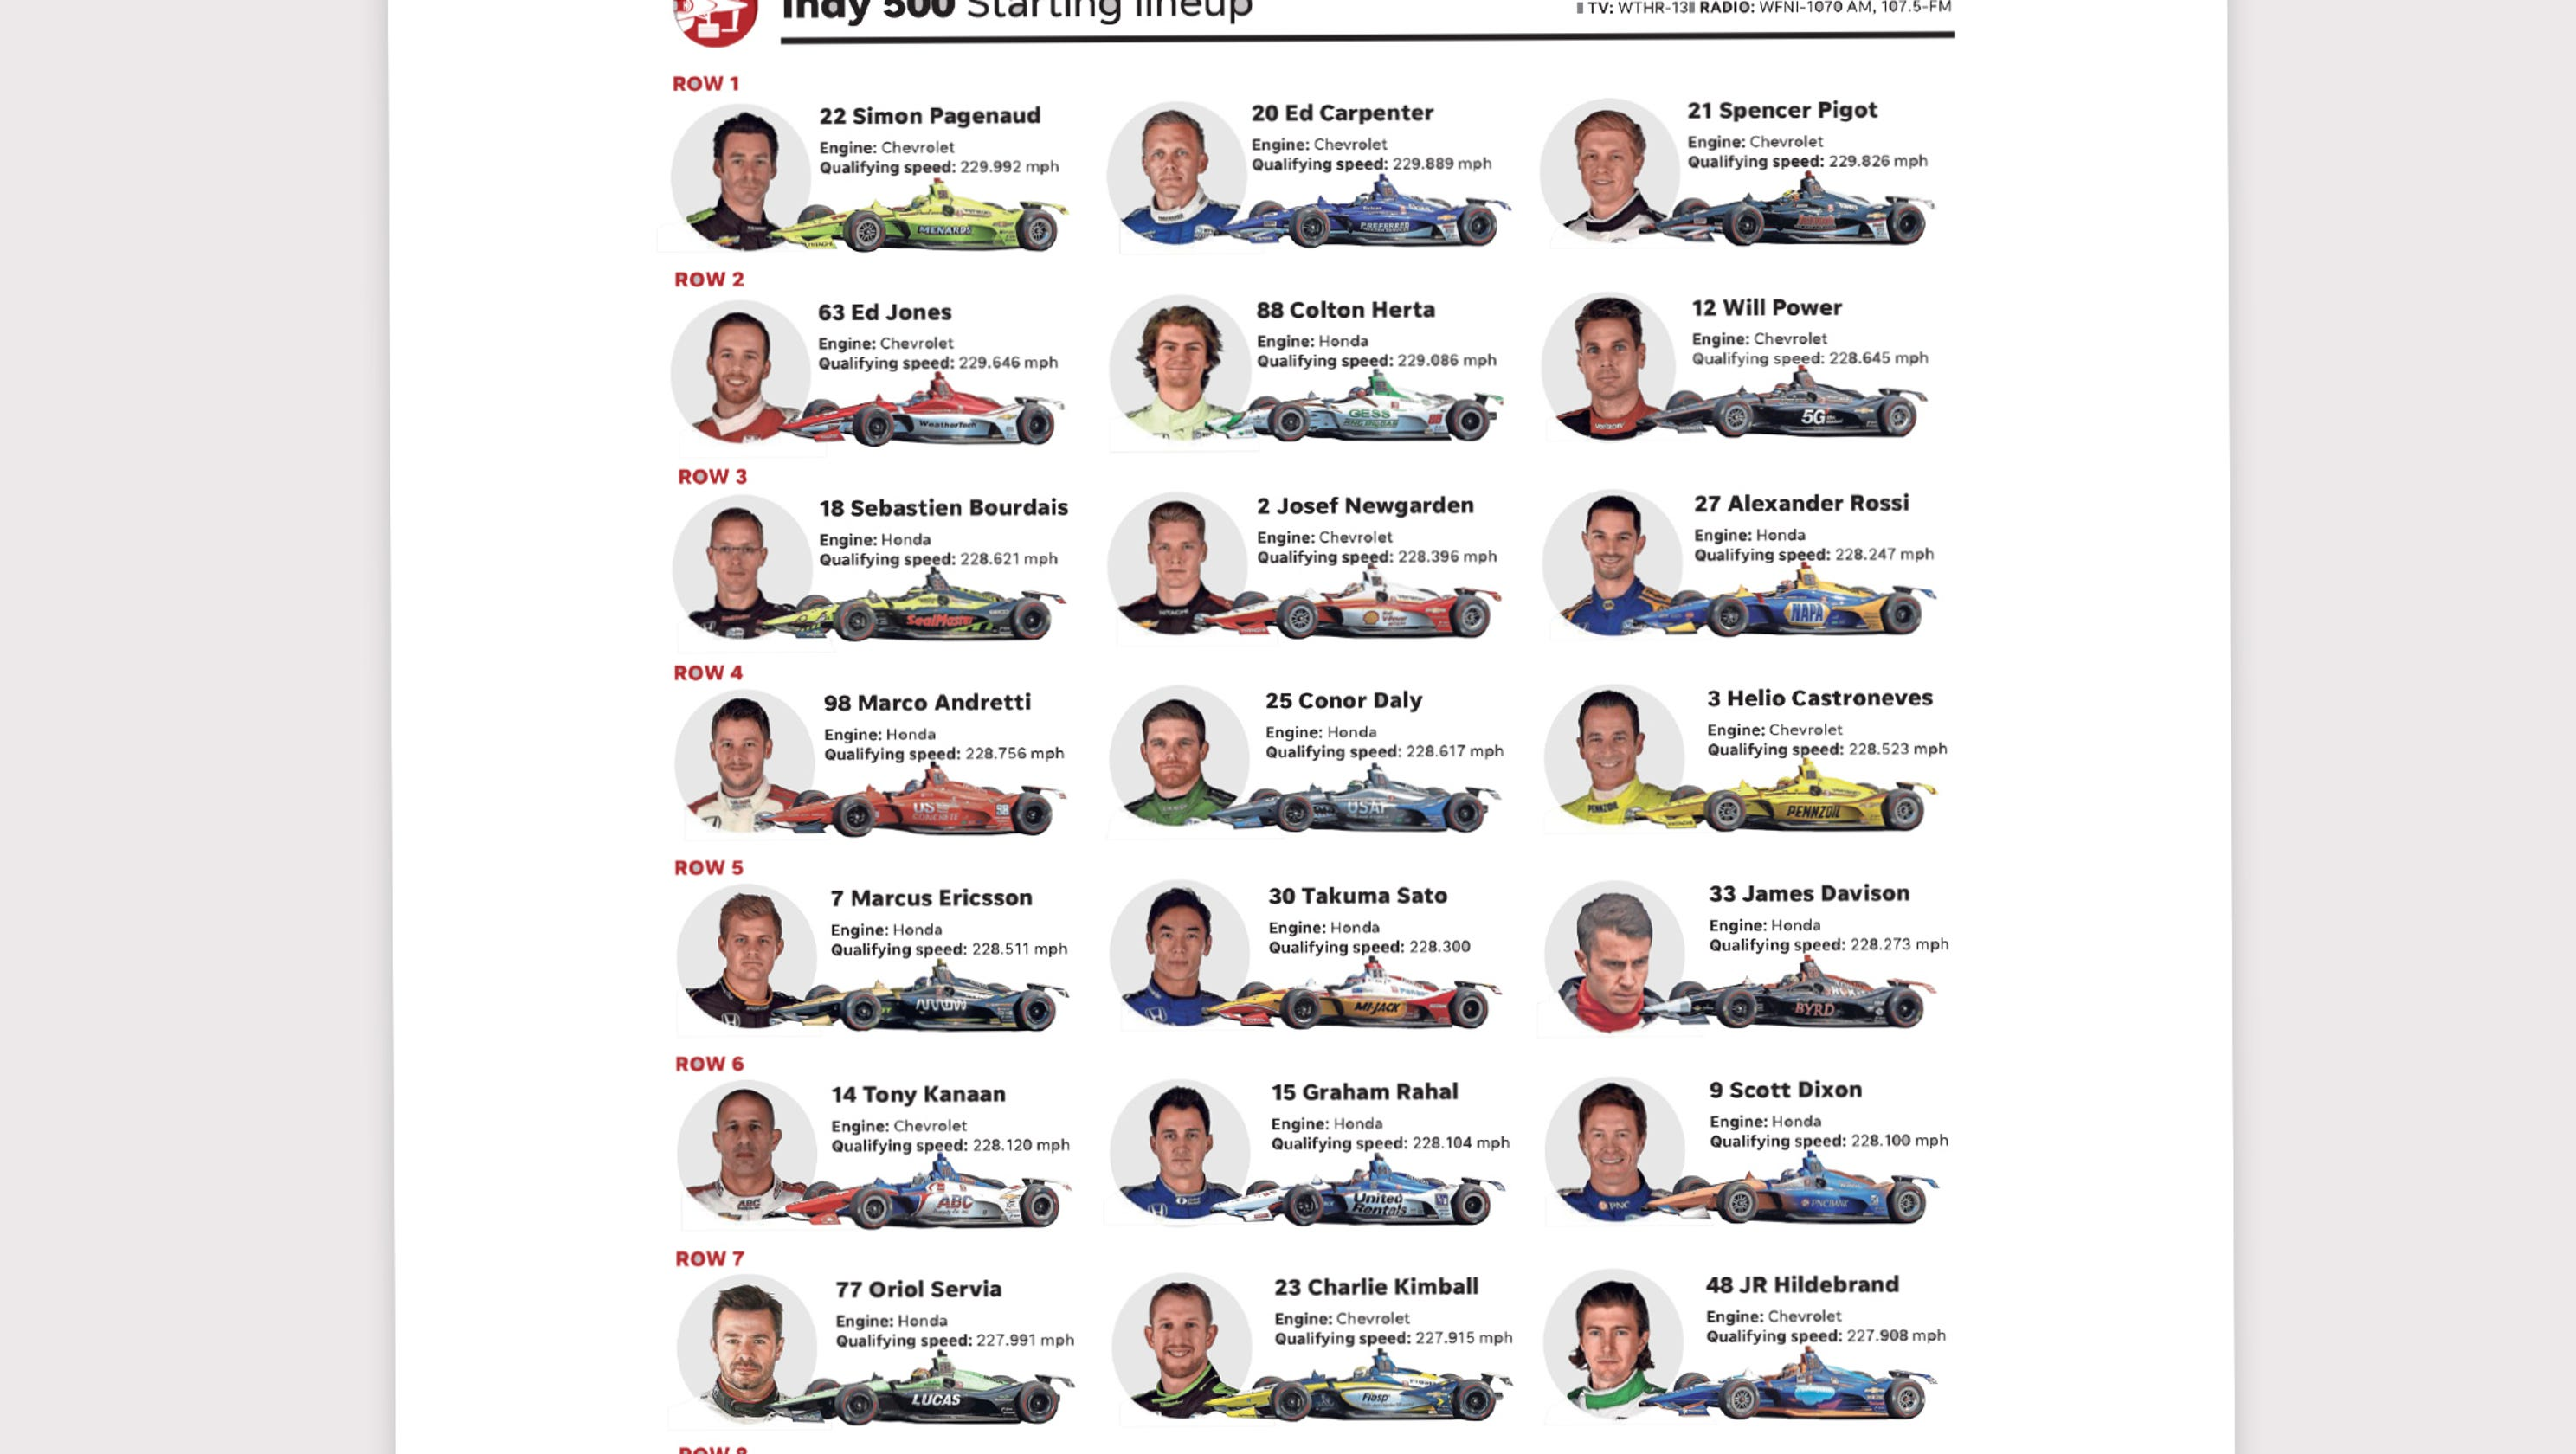 Indy 500 lineup: Printable starting grid for the 2019 race